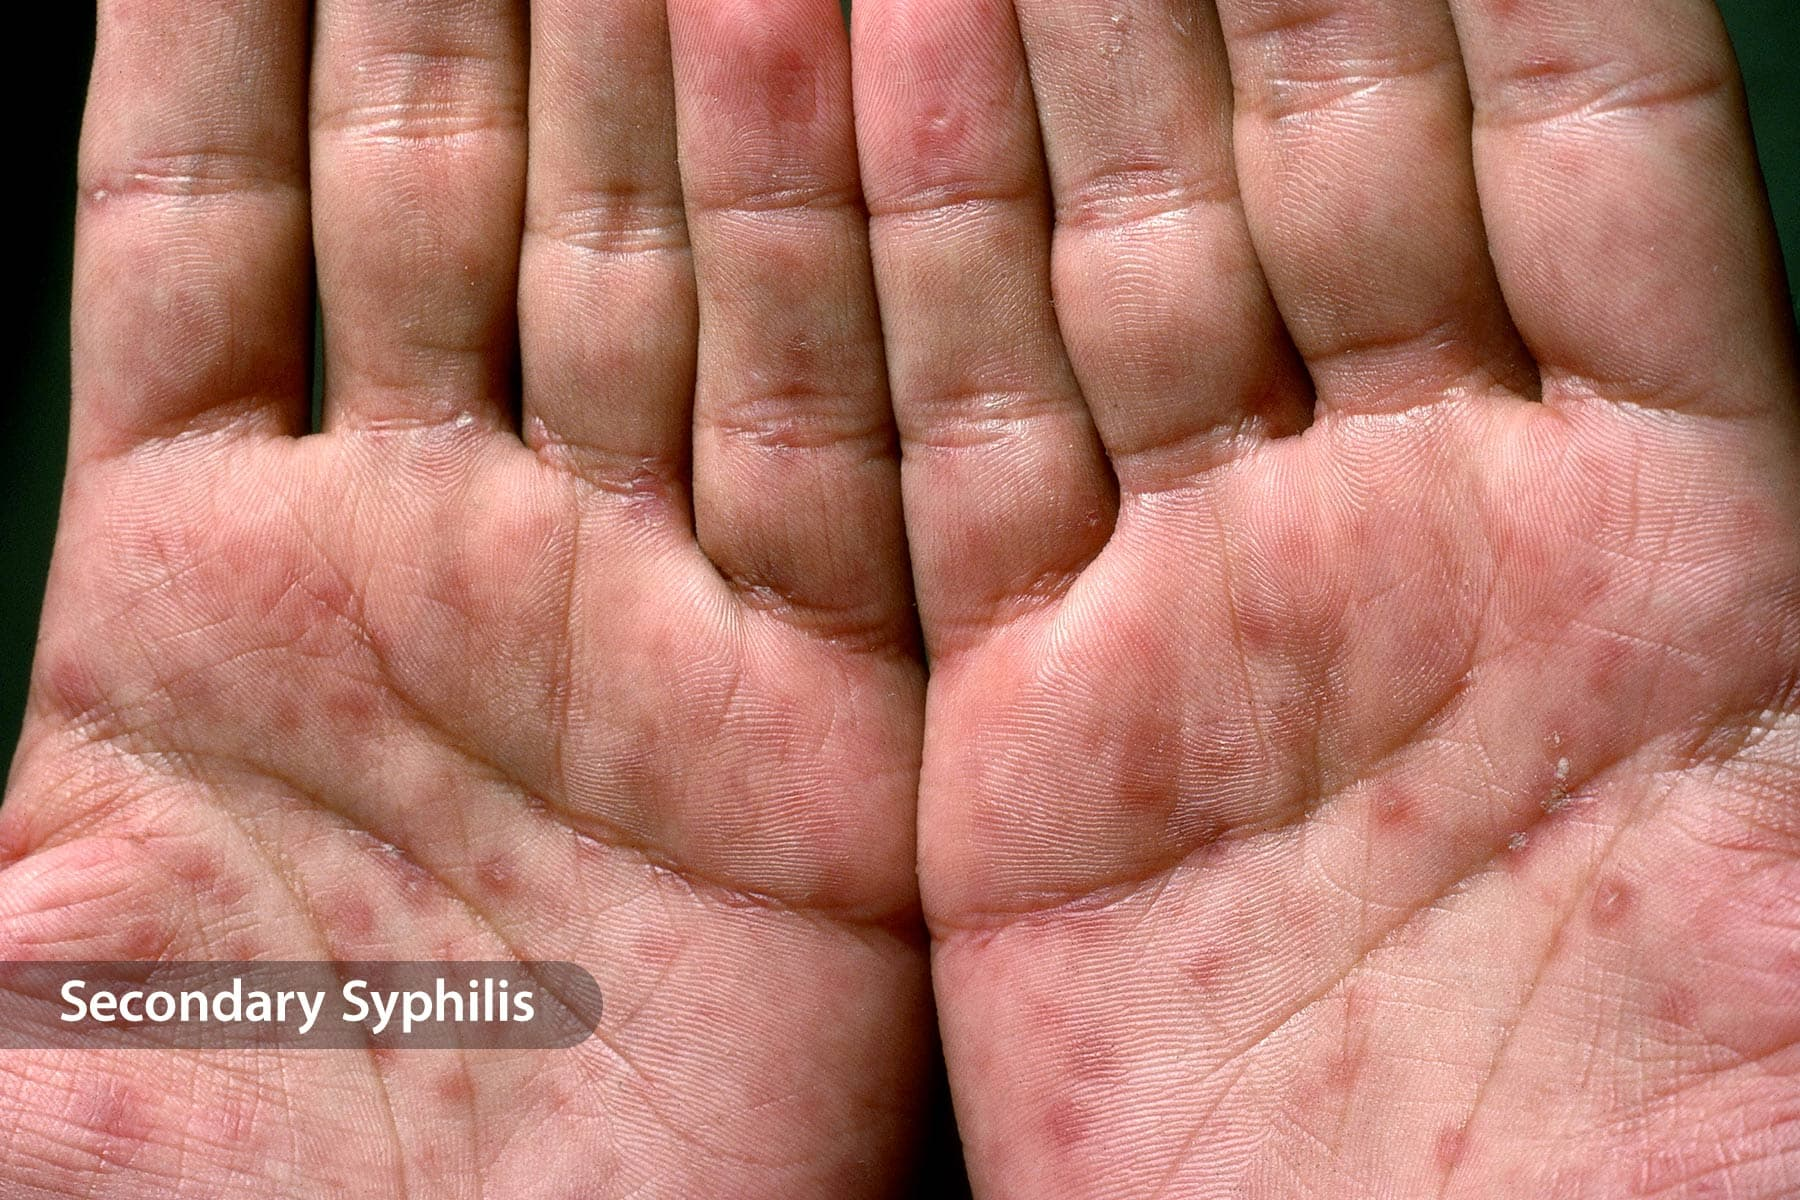 Hiv and lung cancer - primariacetateni.ro, Warts on hands sign of hiv